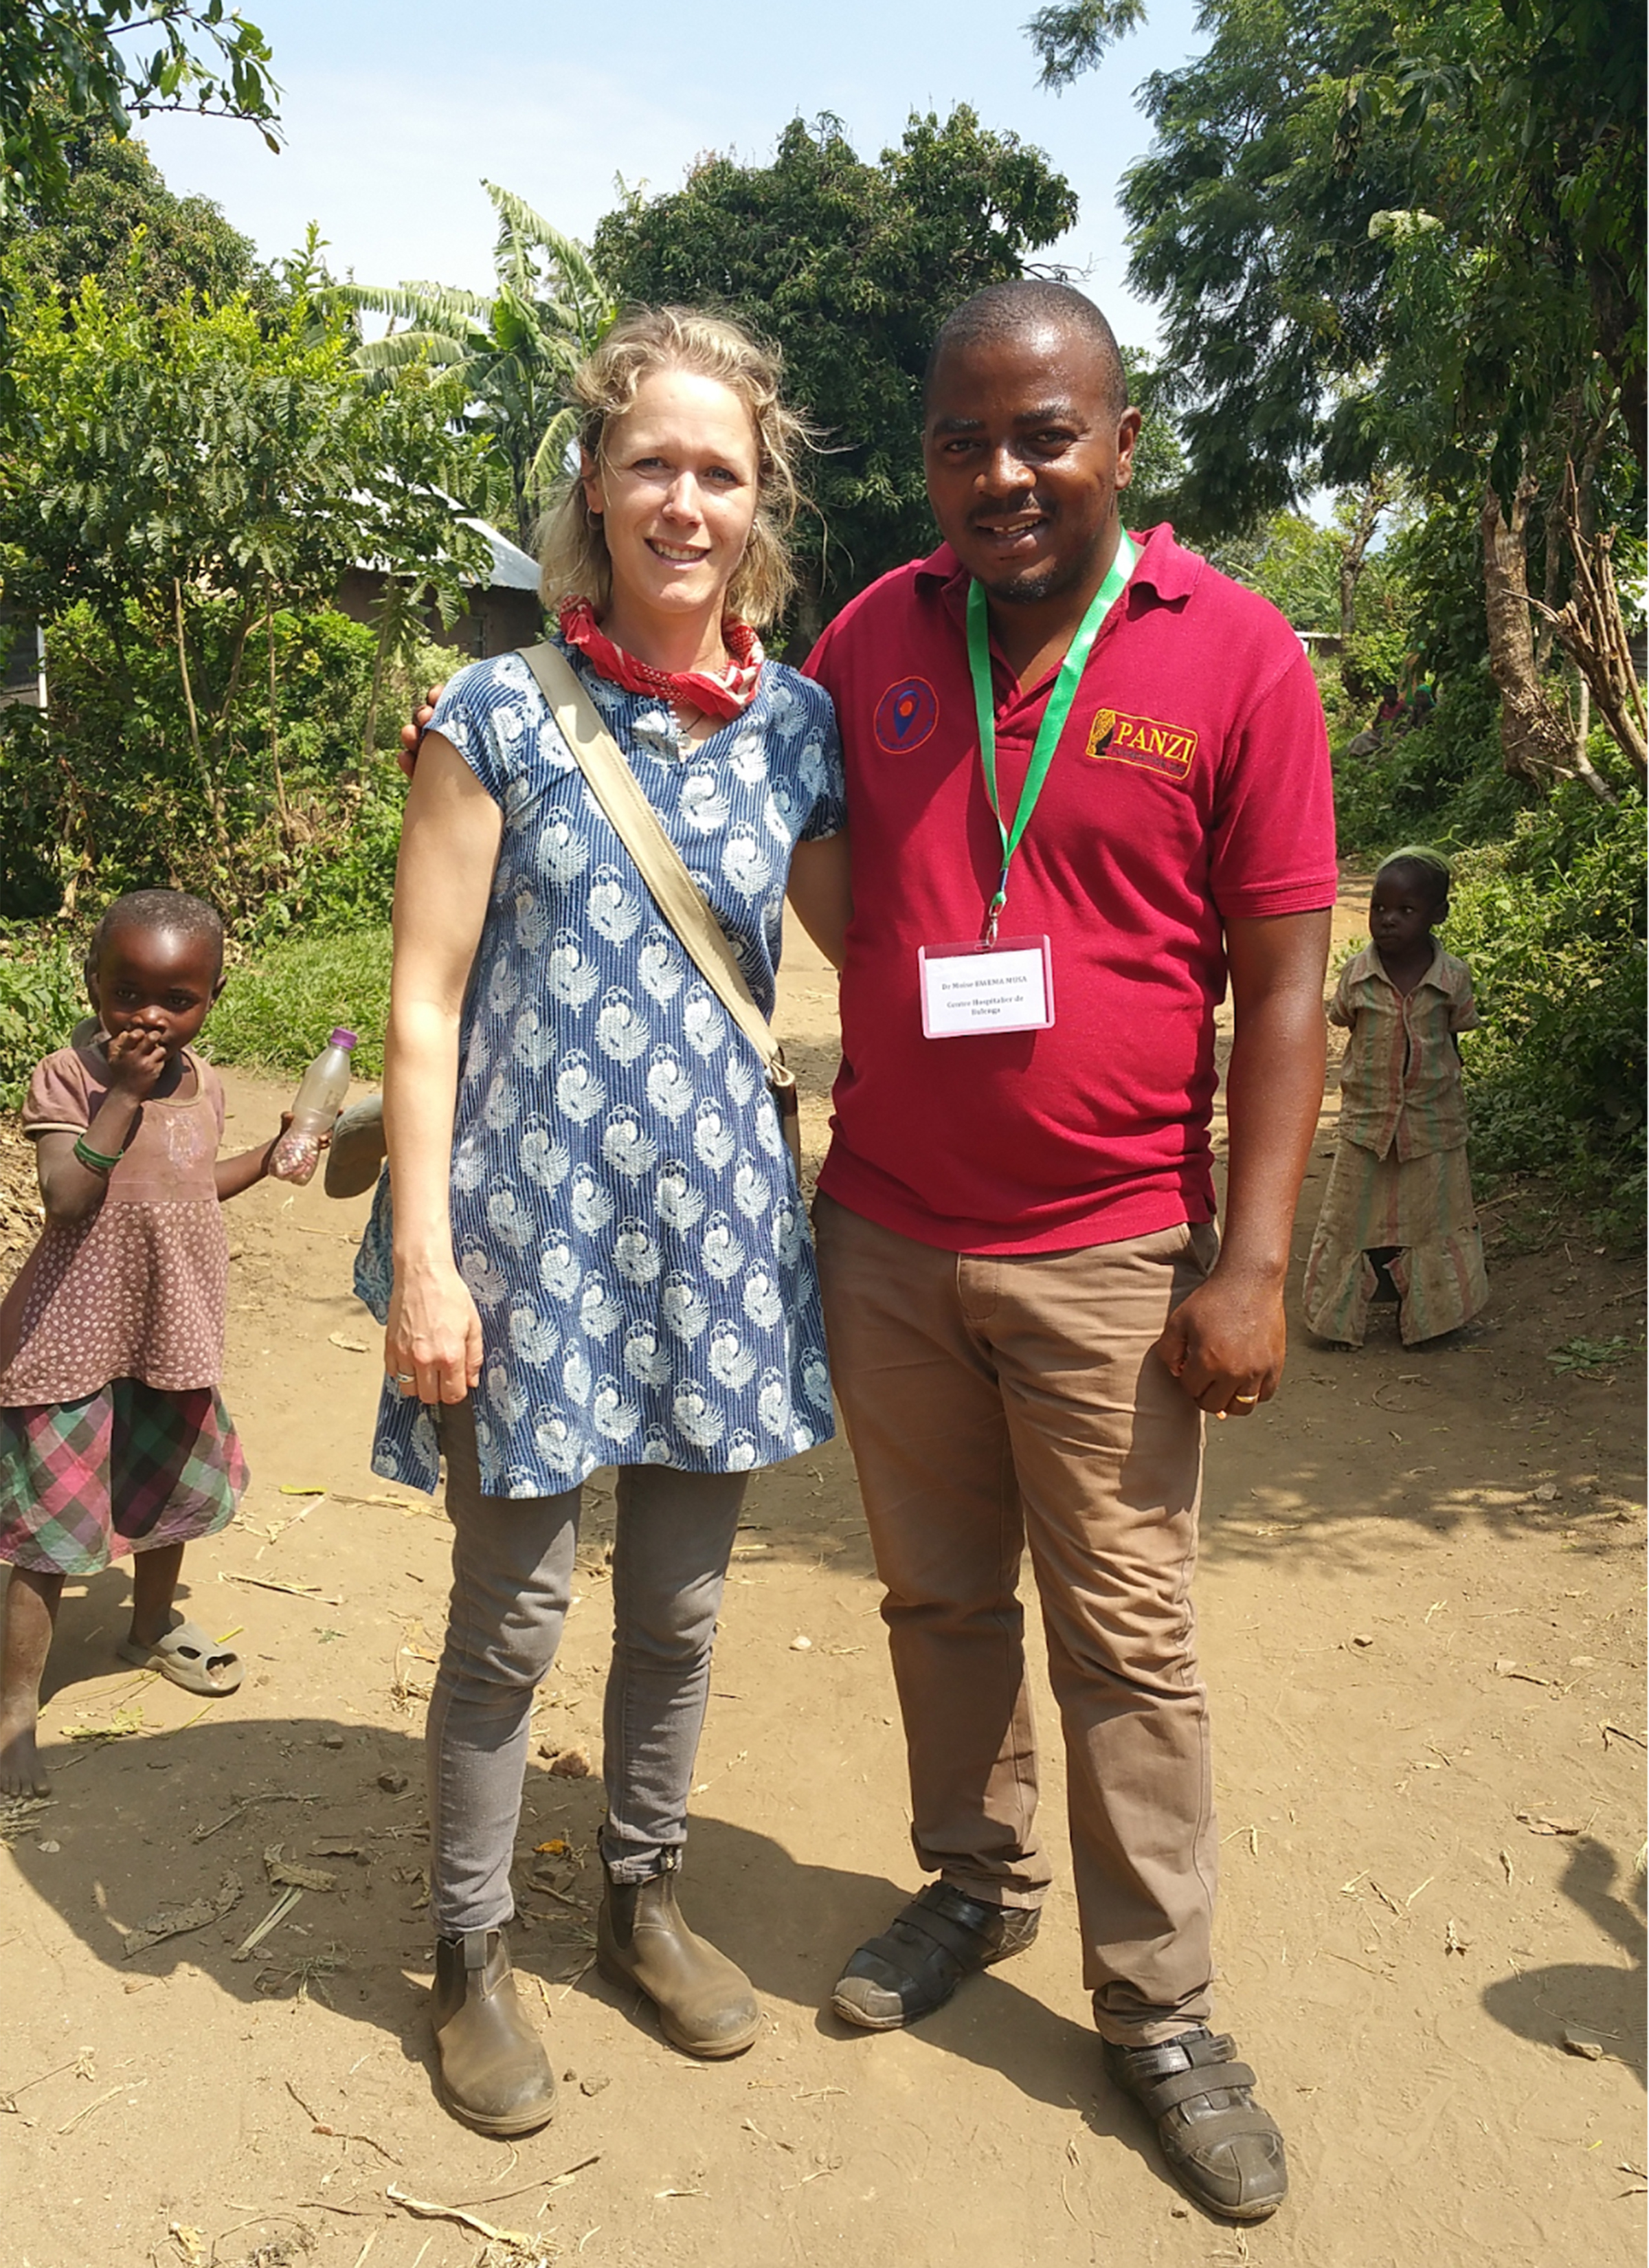 Beth Ann with Dr. Bwema at the One Stop Center in Bulenga, DRC